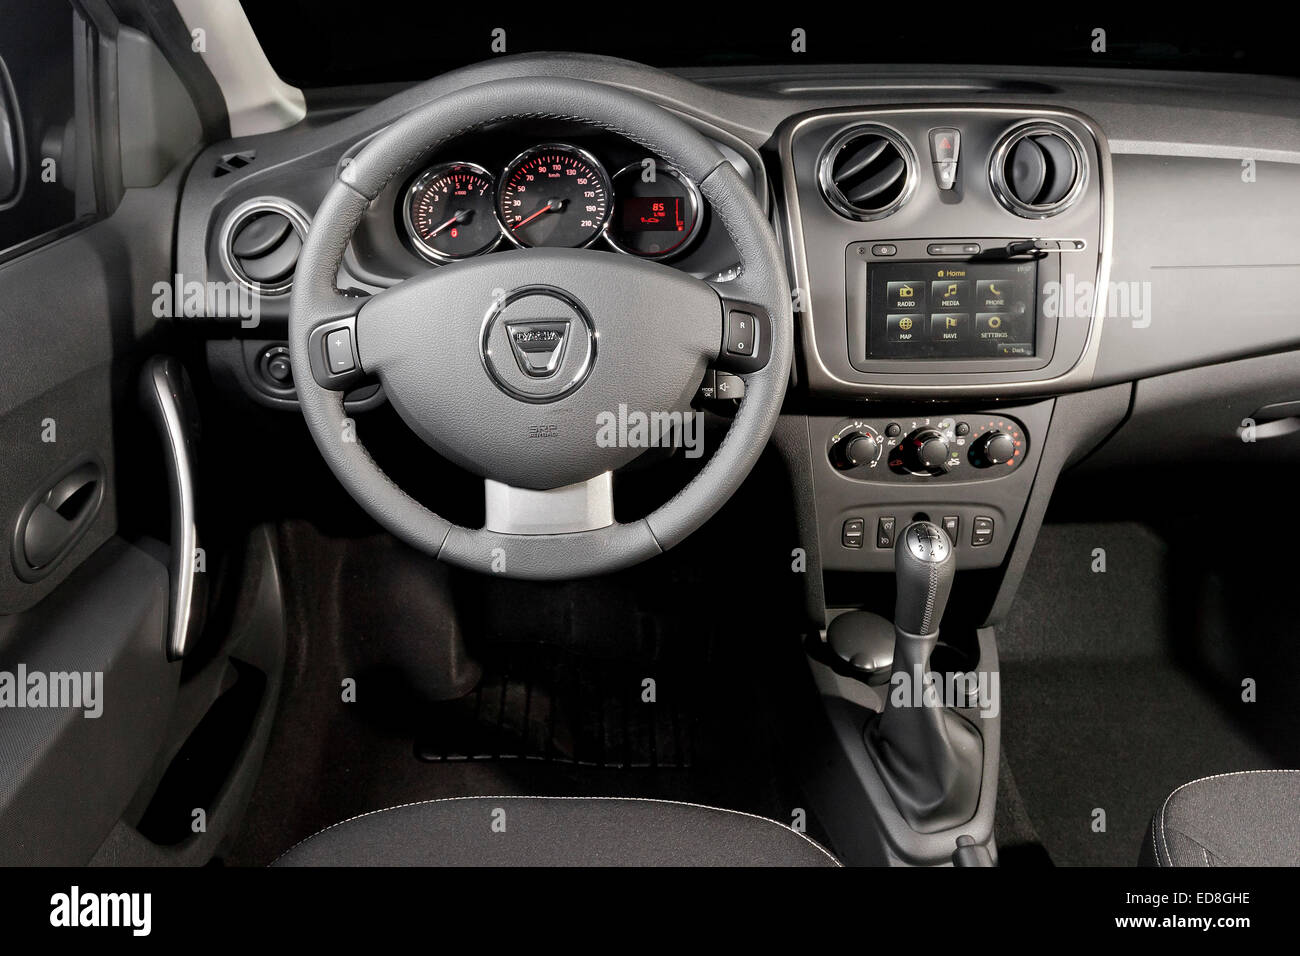 Interior With Romanian Dacia Car Stockfotos & Interior With Romanian ...